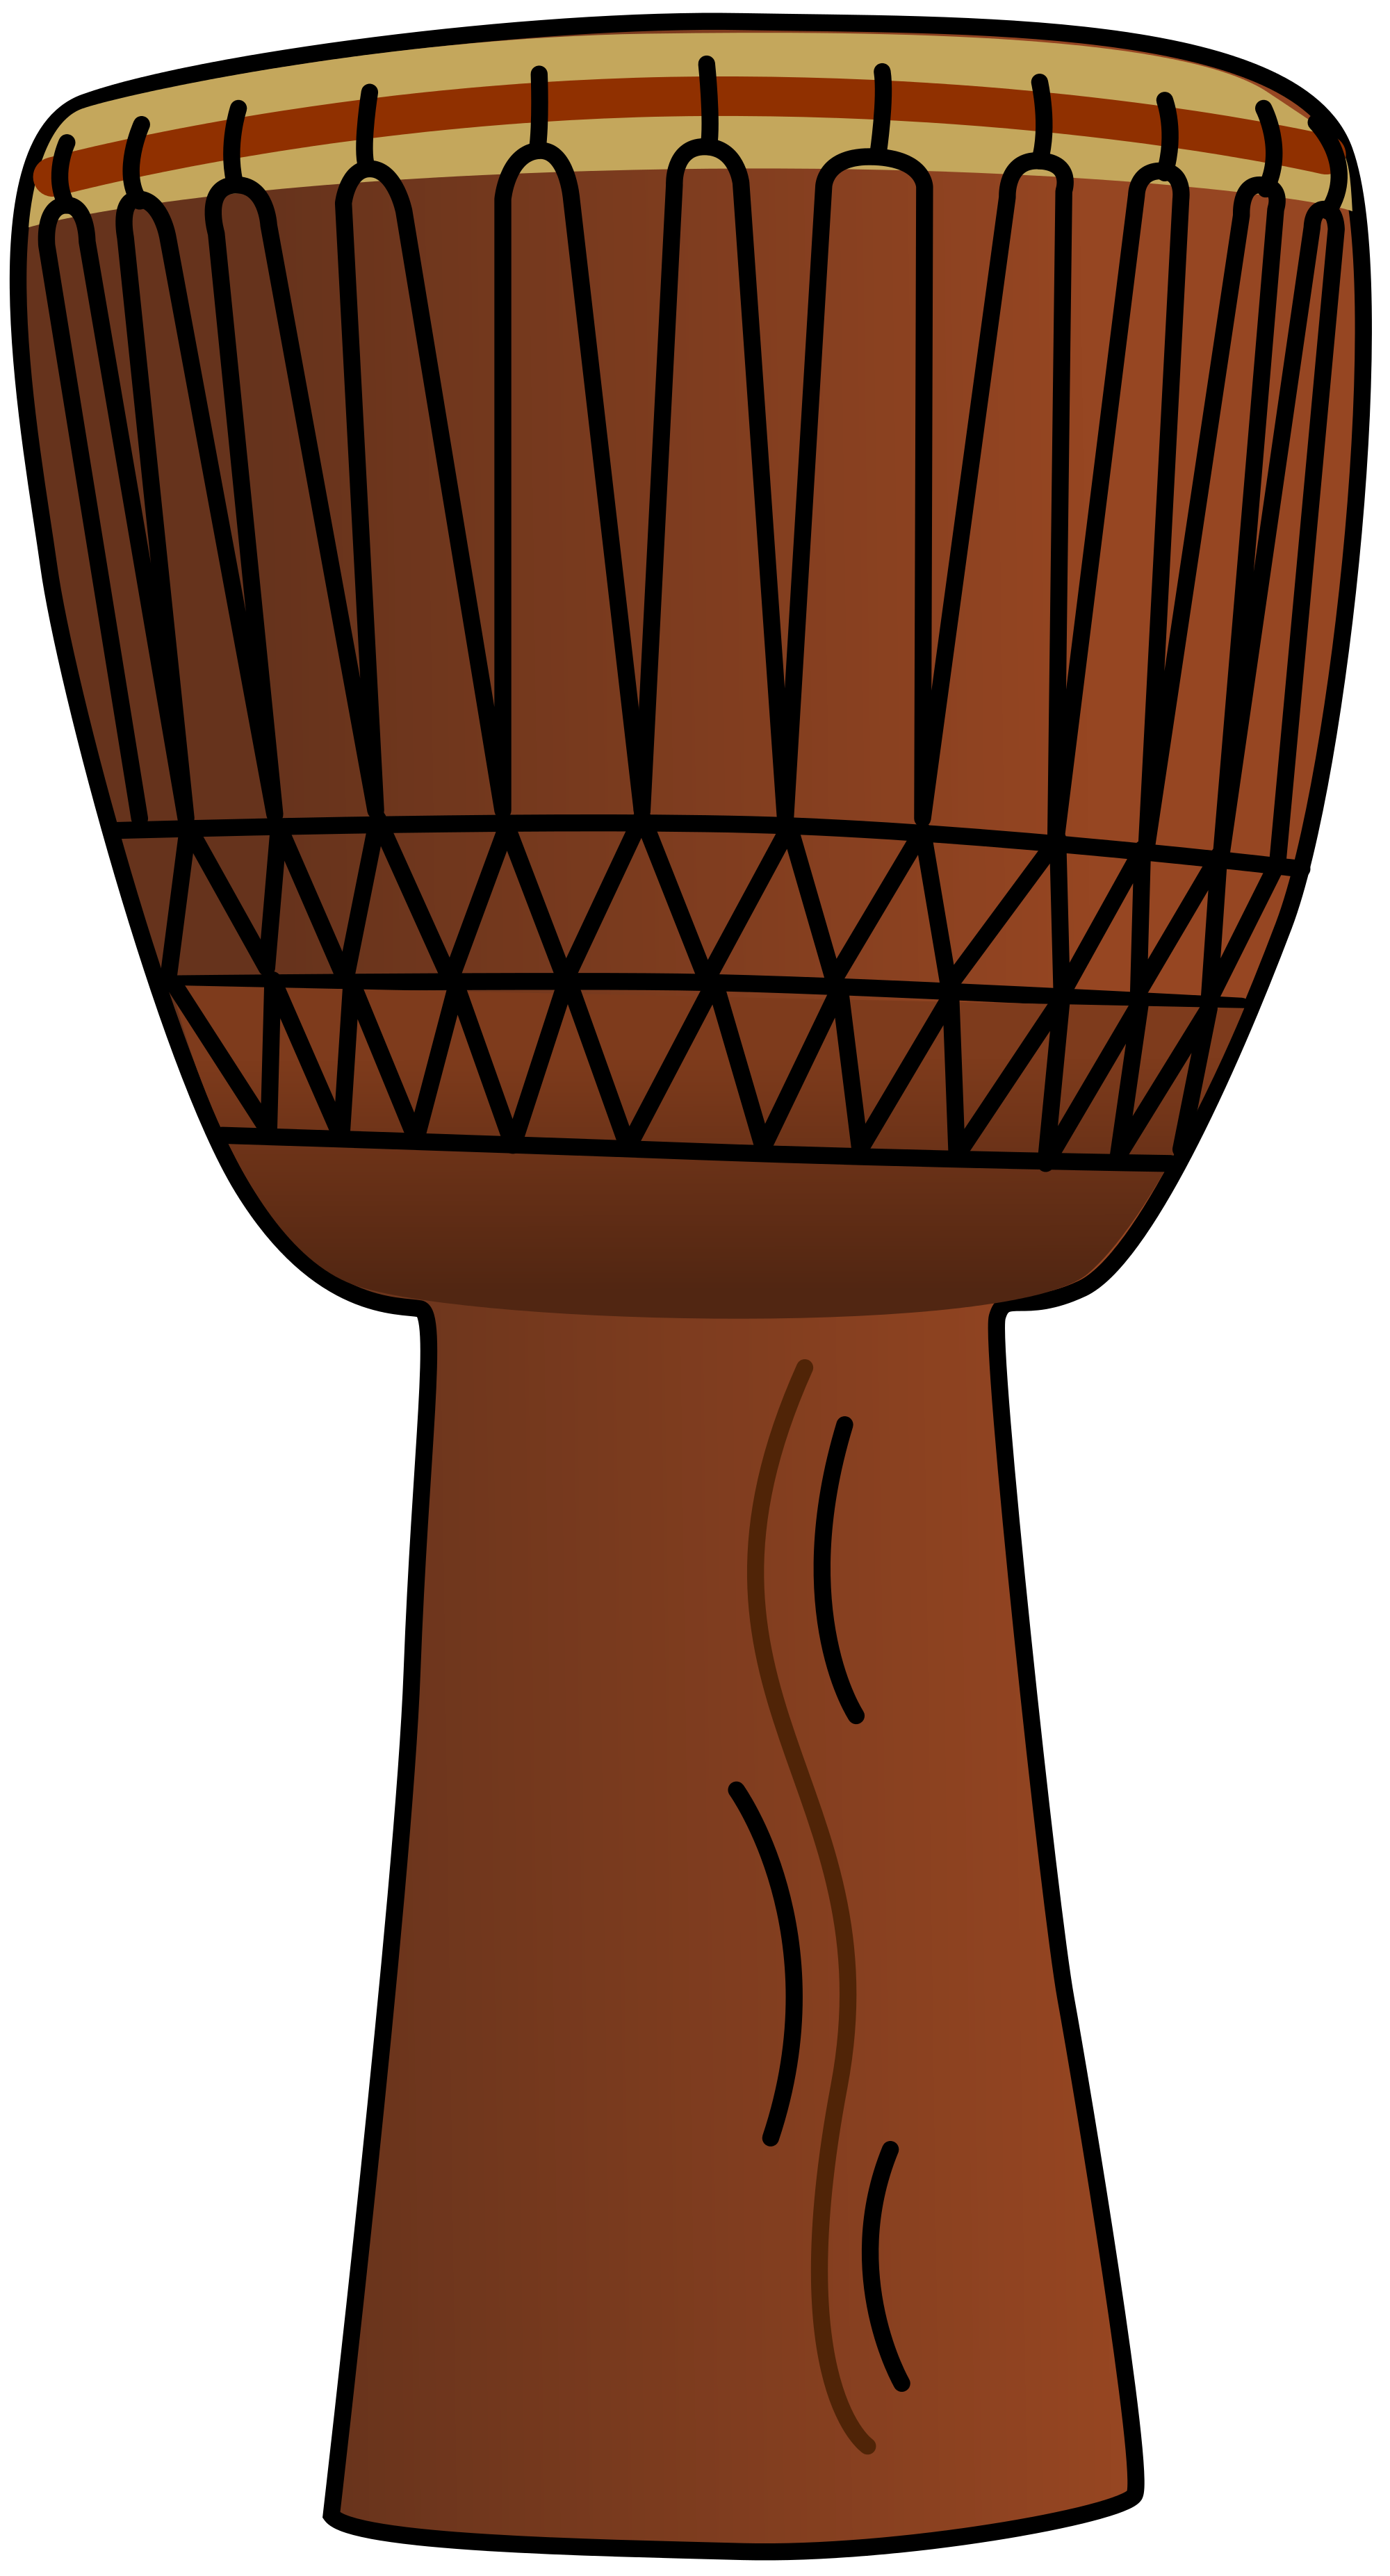 Drums clipart svg. File african drum wikimedia